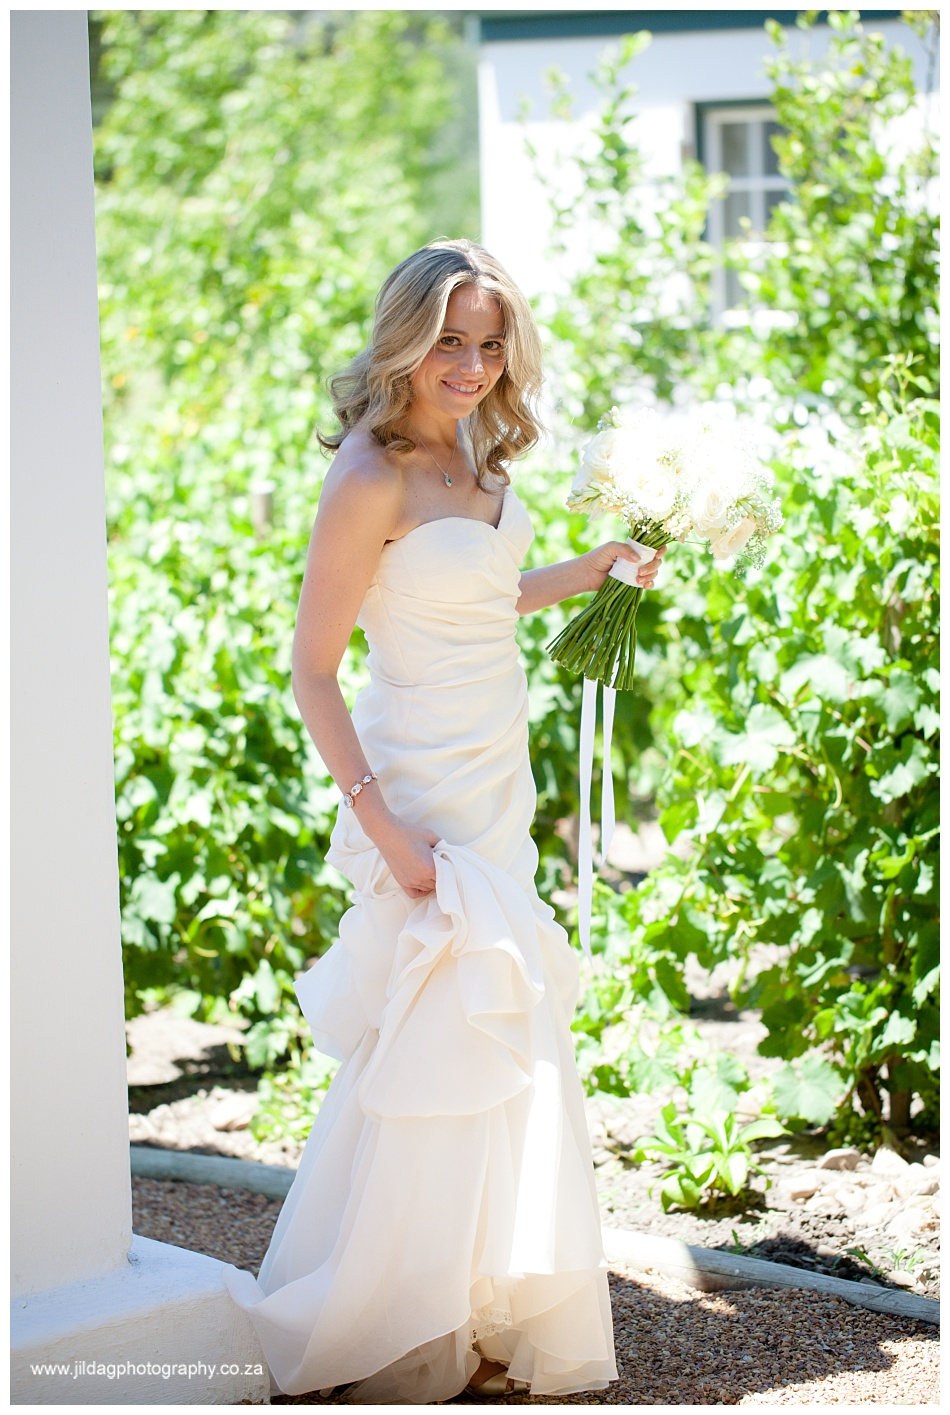 Jilda-G-Photography-Boschendal-wedding_1125